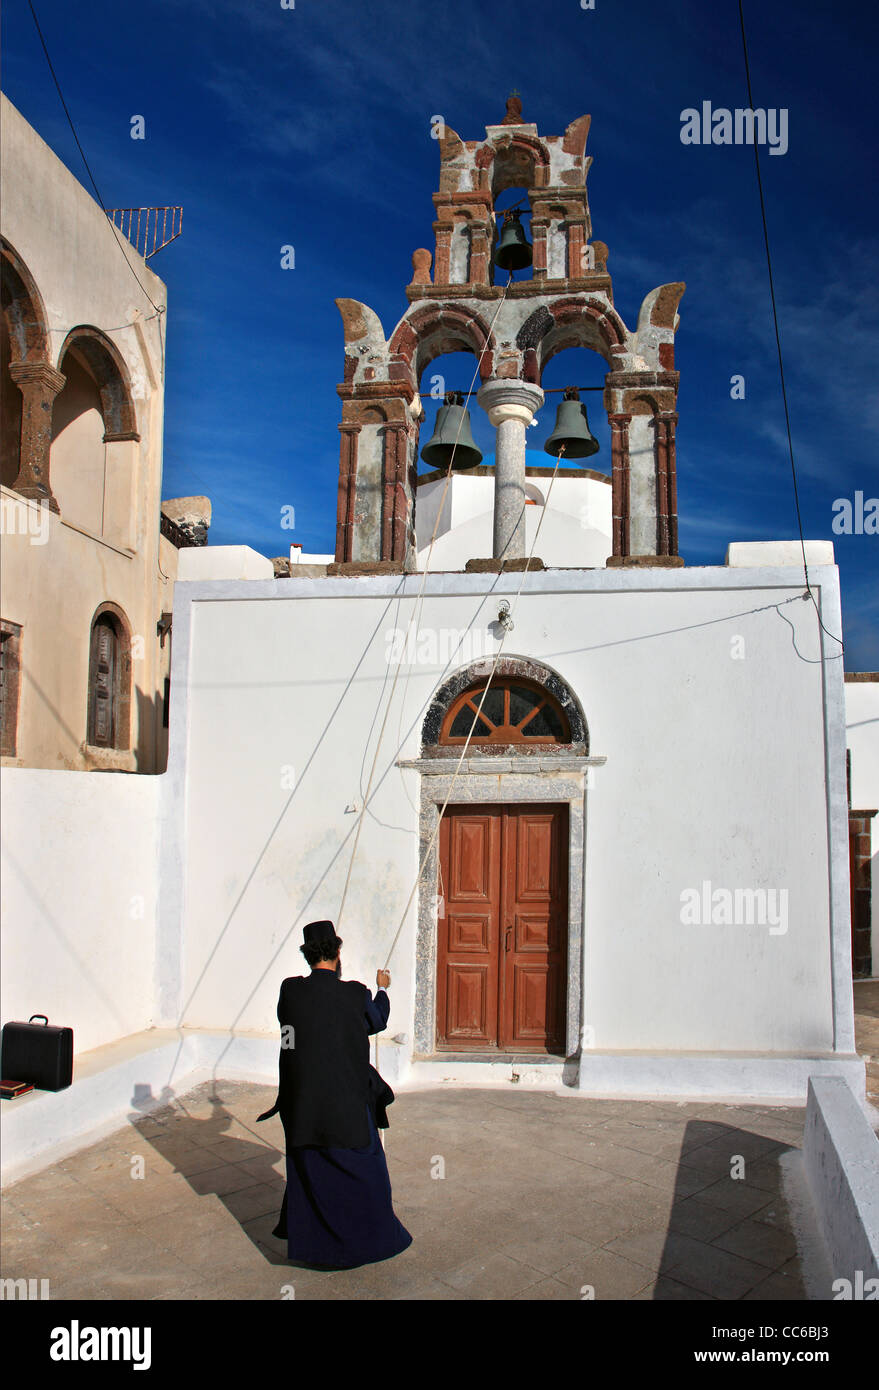 A Greek Orthodox priest tolling the bells of a church in picturesque Pyrgos village, Santorini island, Cyclades, - Stock Image